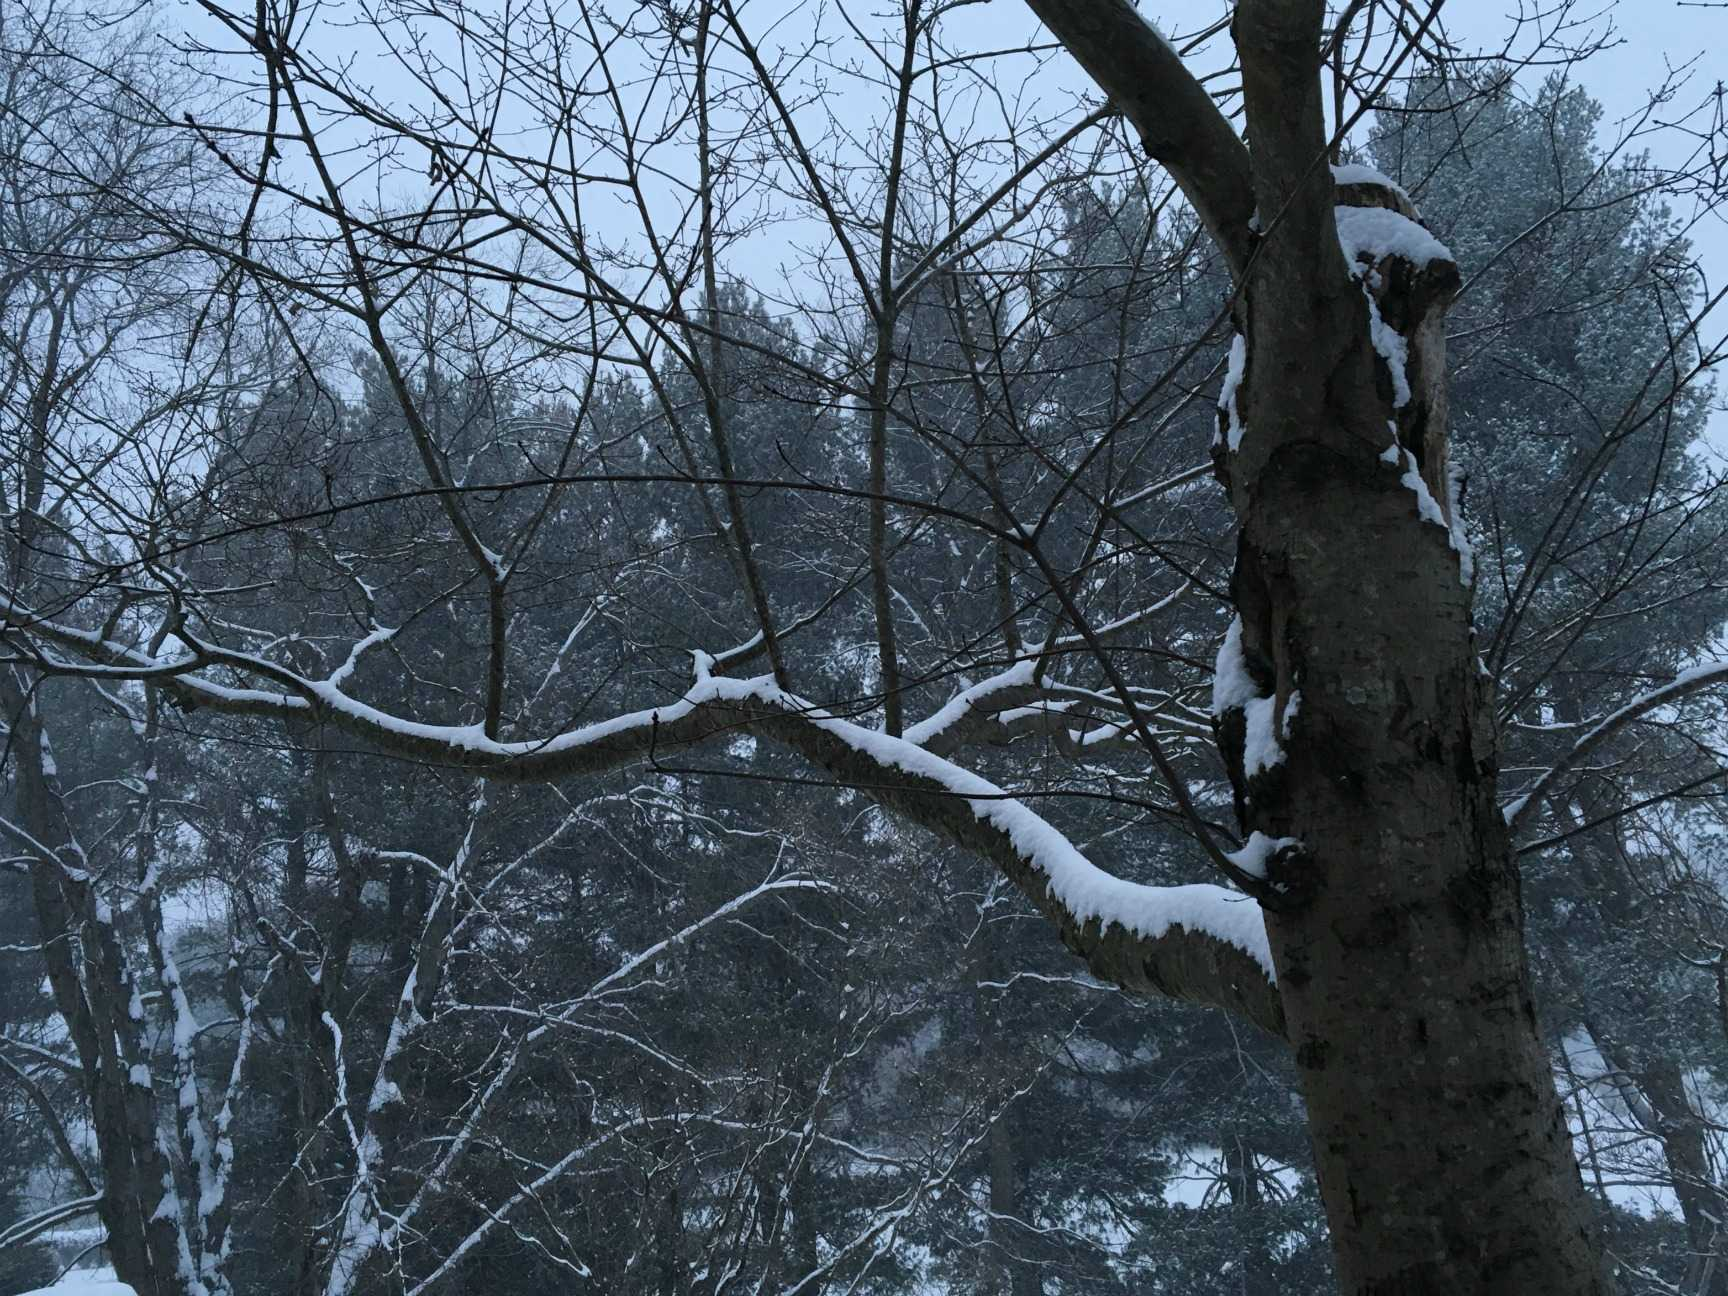 Snow blankets trees in the Fairfax County area.